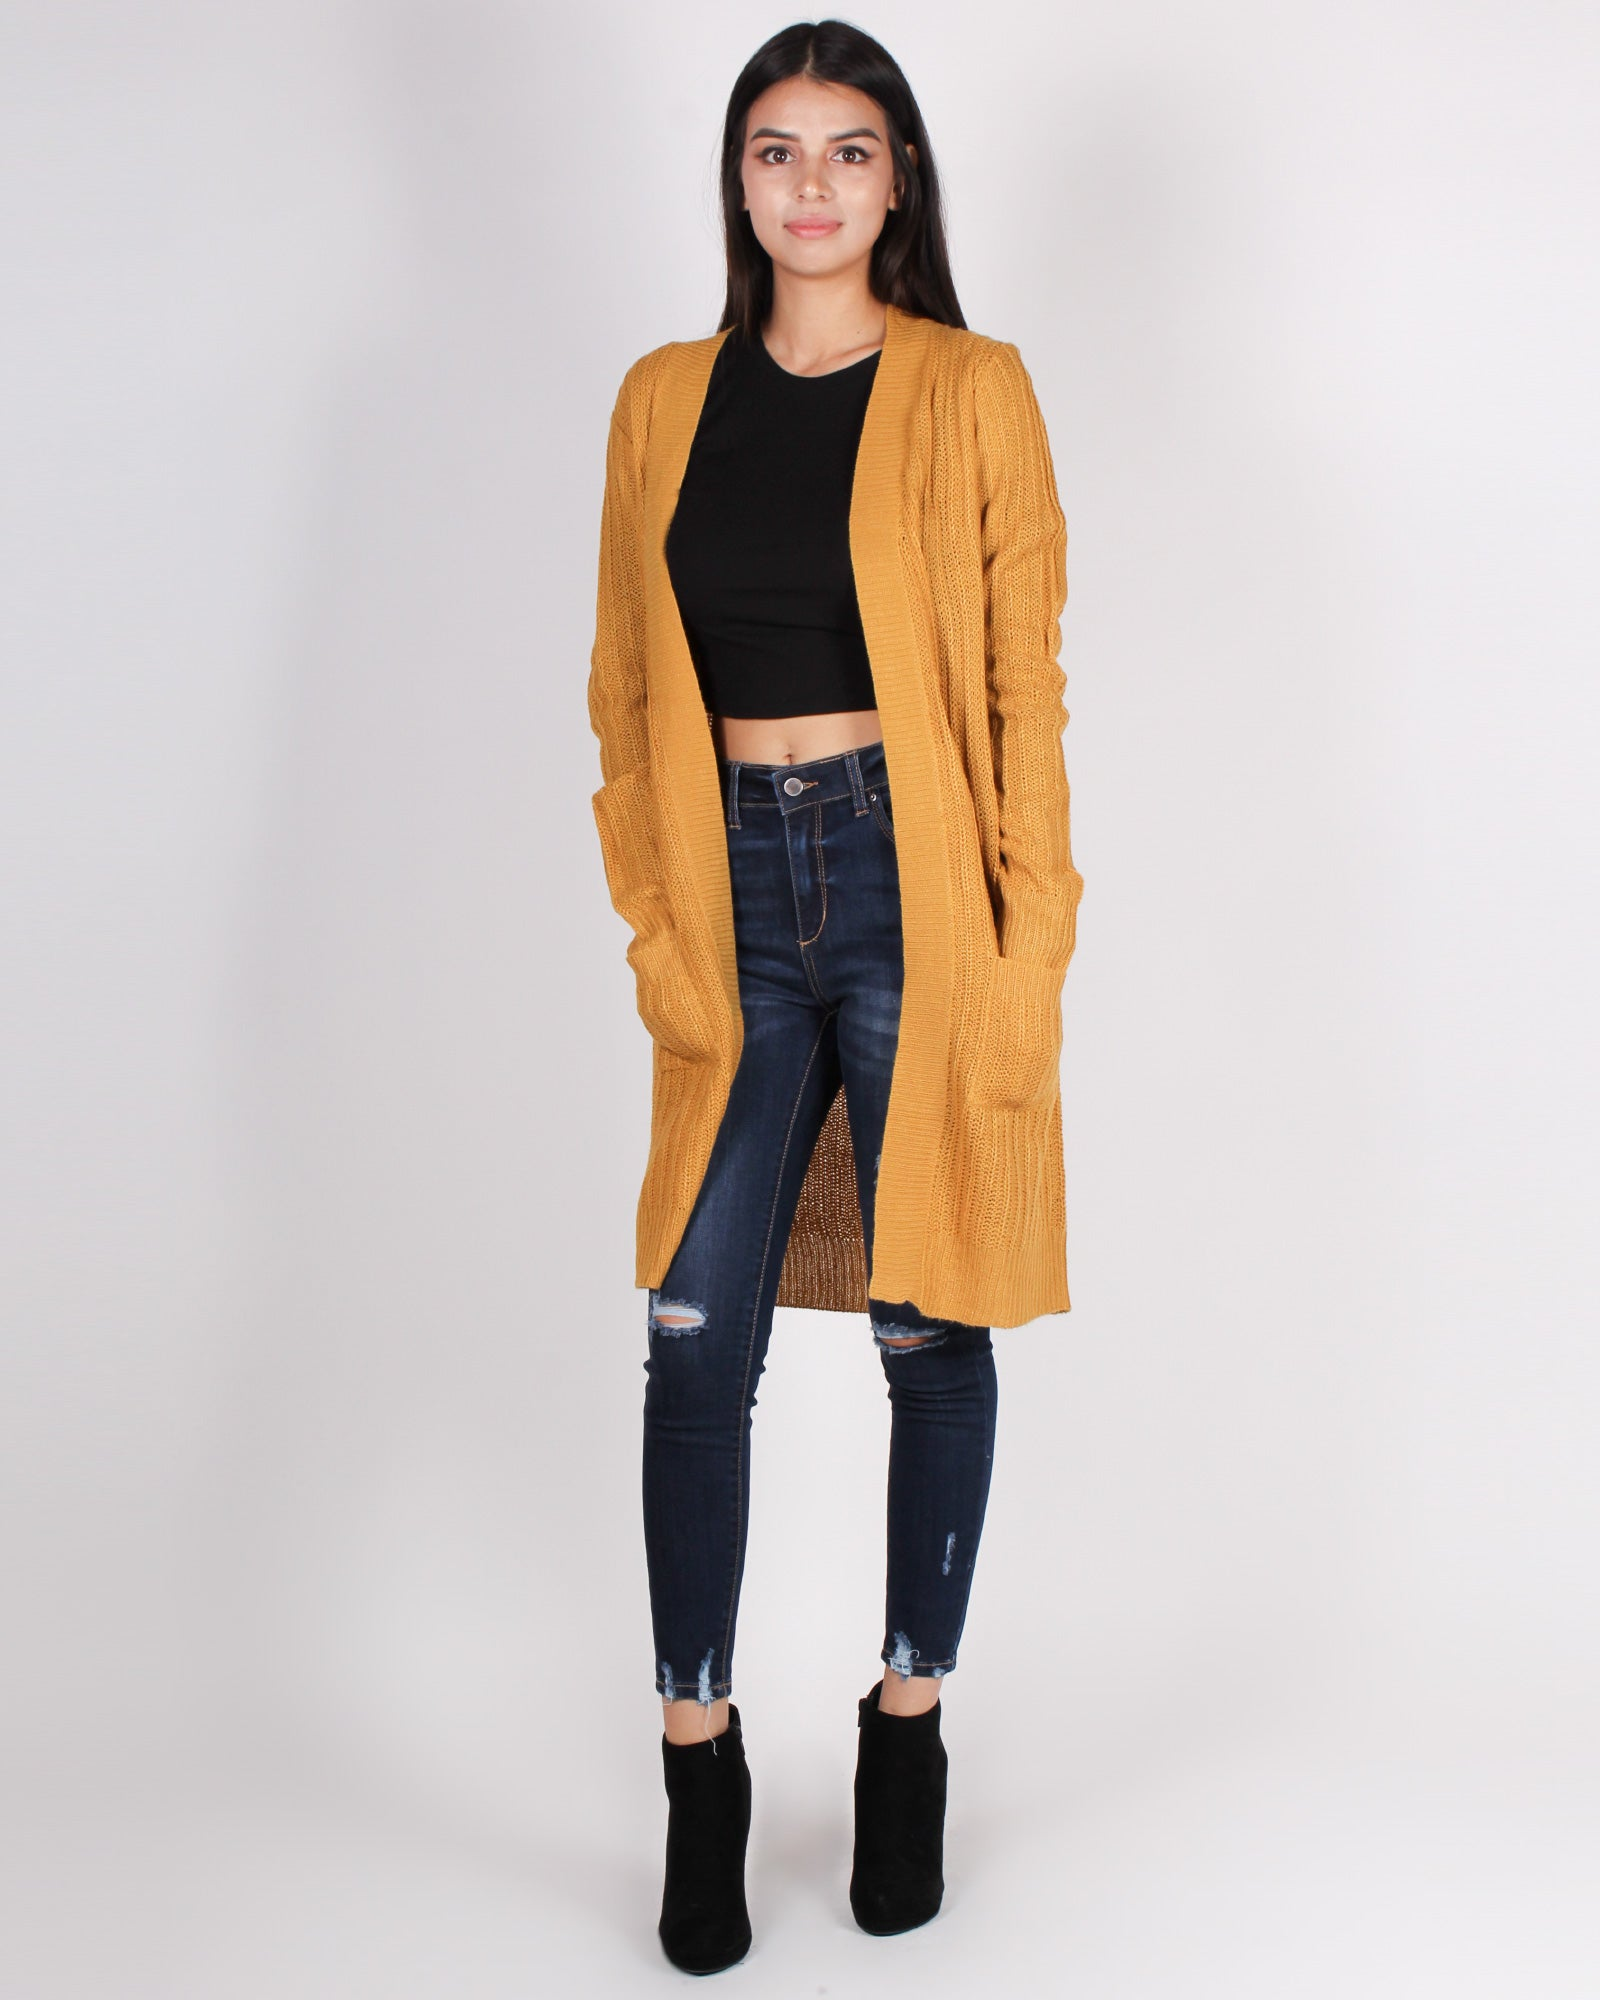 Fashion Q Shop Q Mysterious Air About You Cardigan (Mustard) 71437